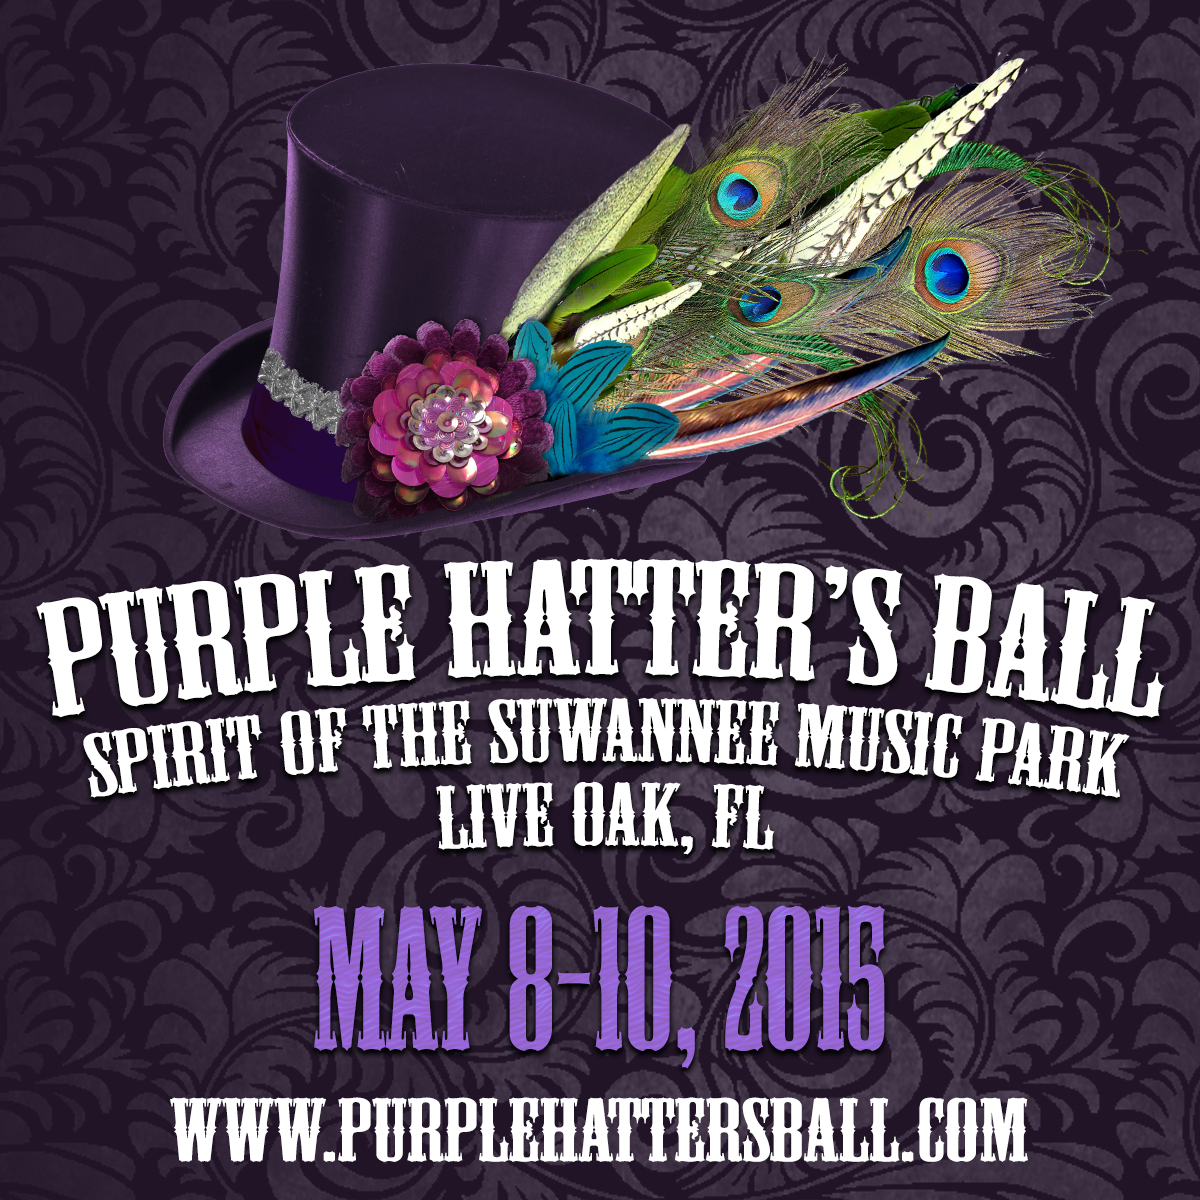 Purple Hatter's Ball 2015